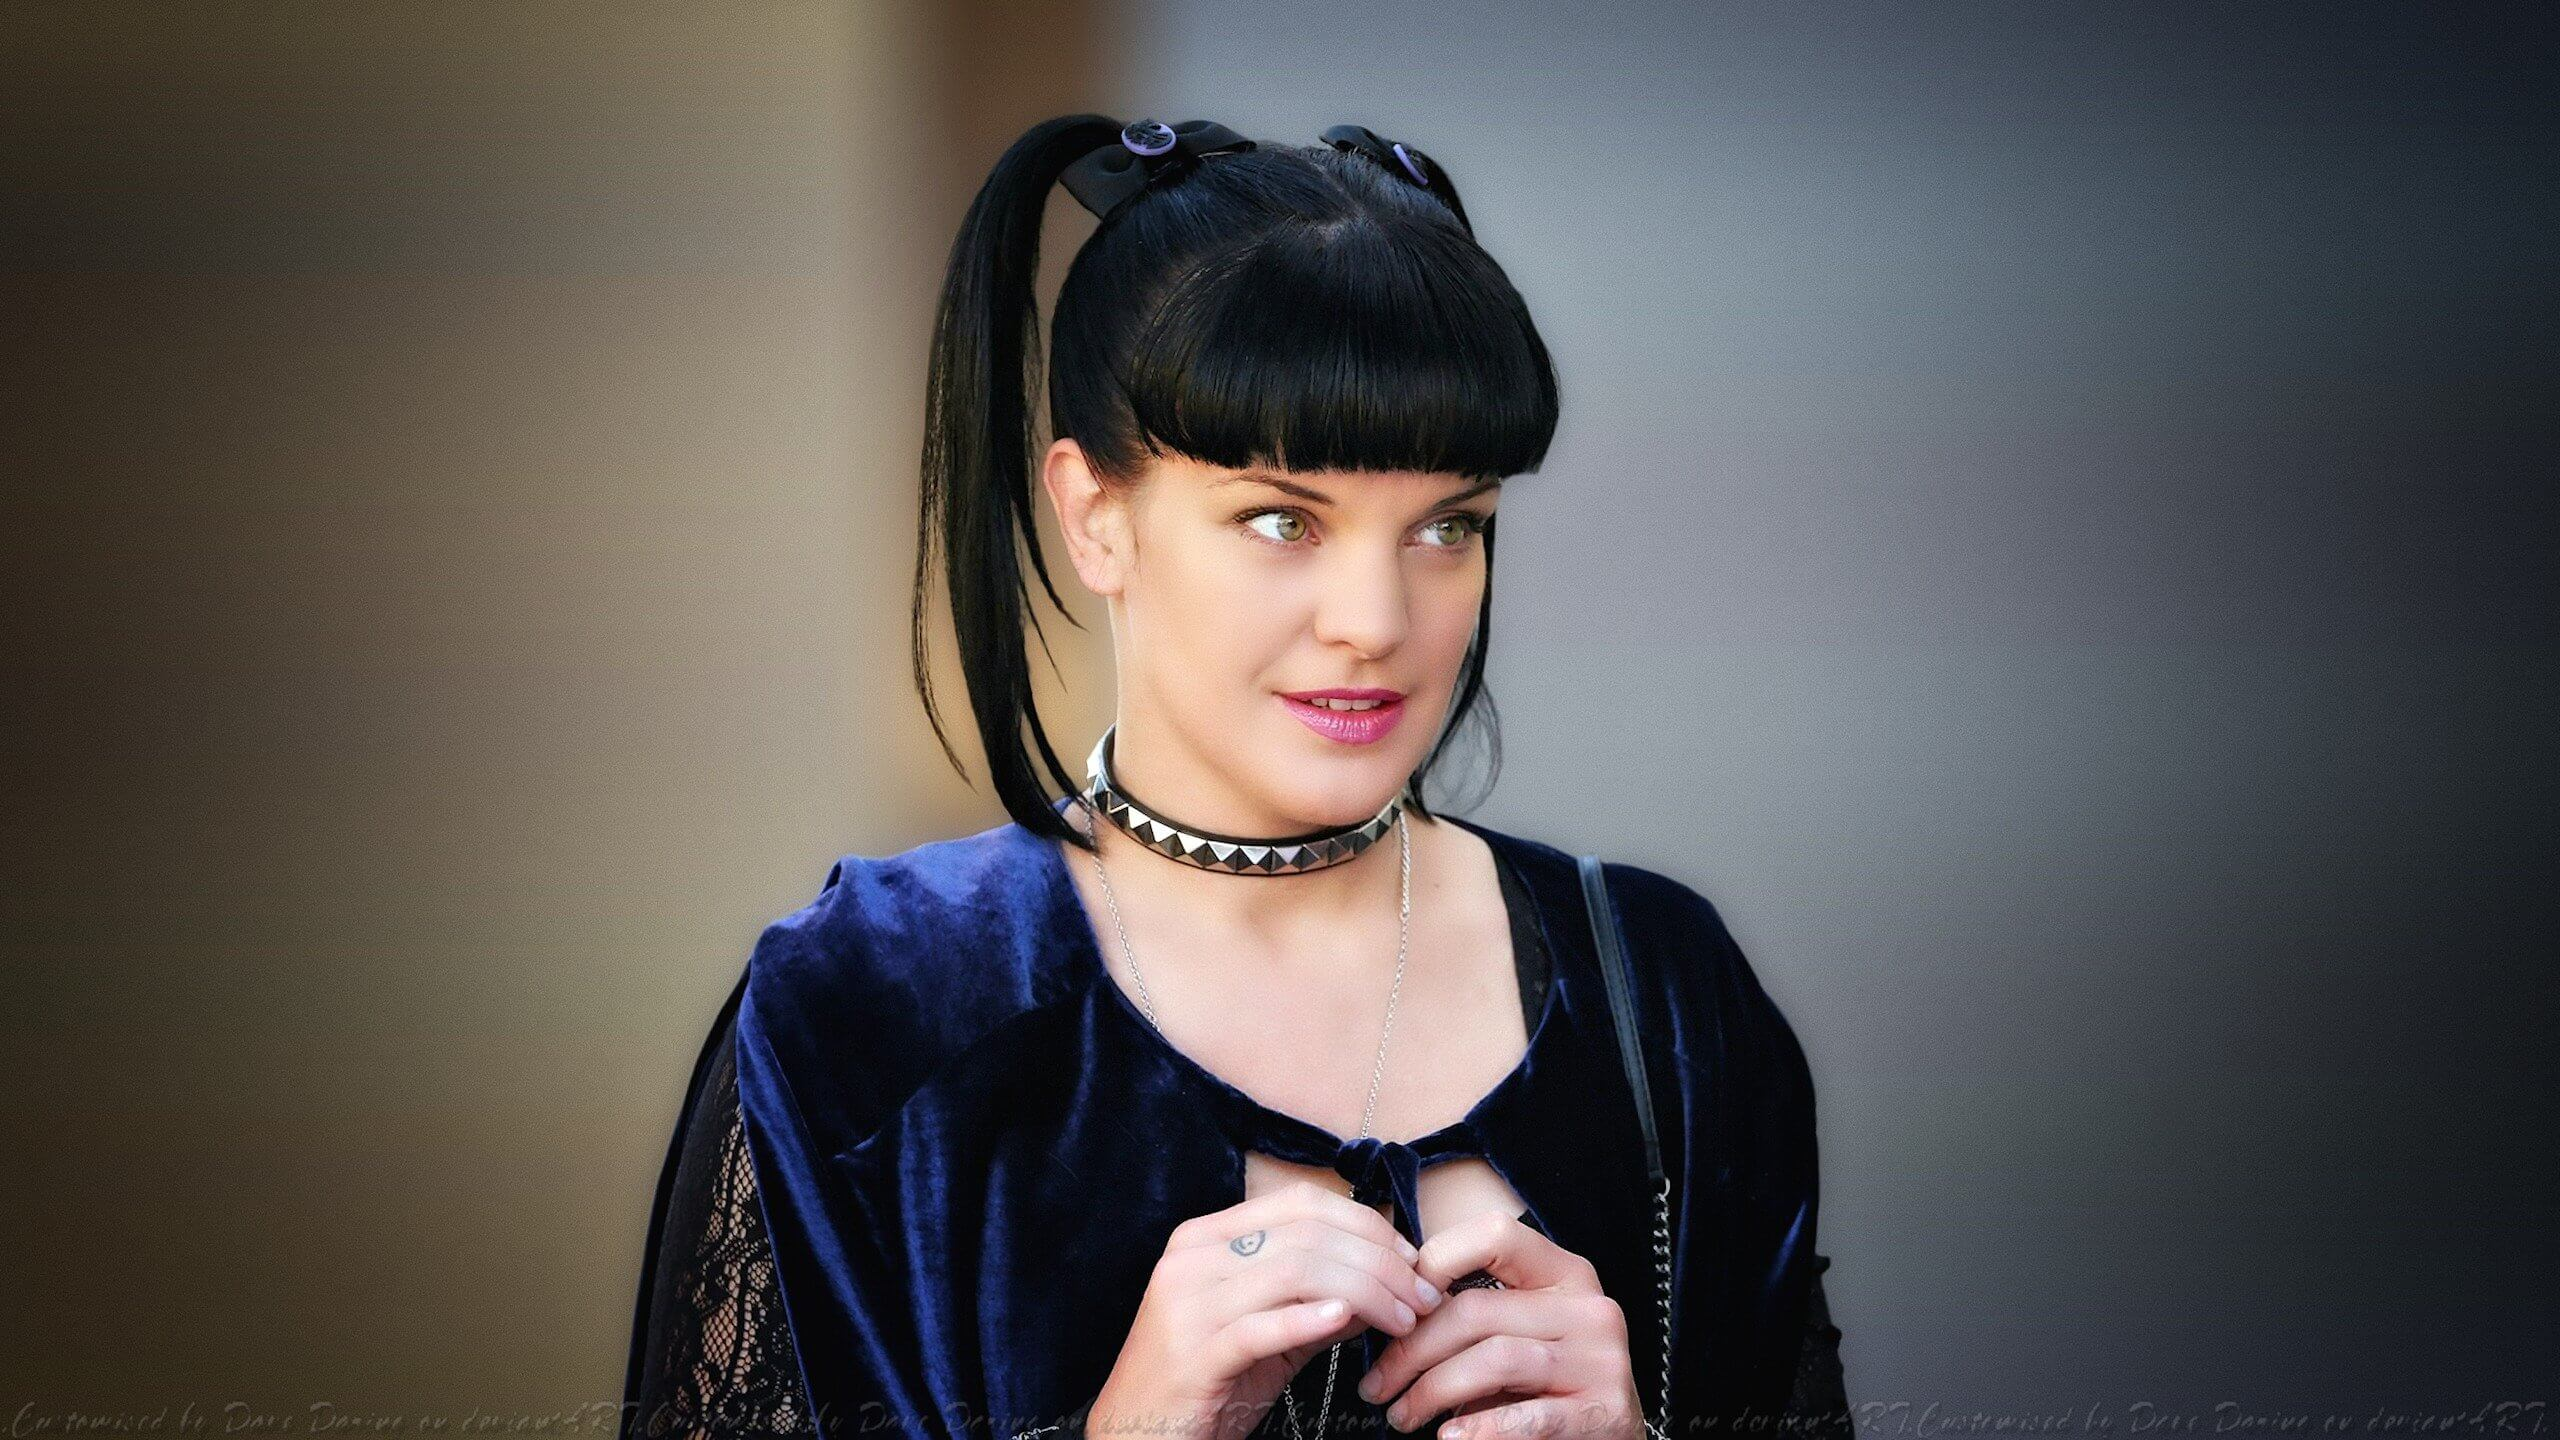 pauley perrette hot lips